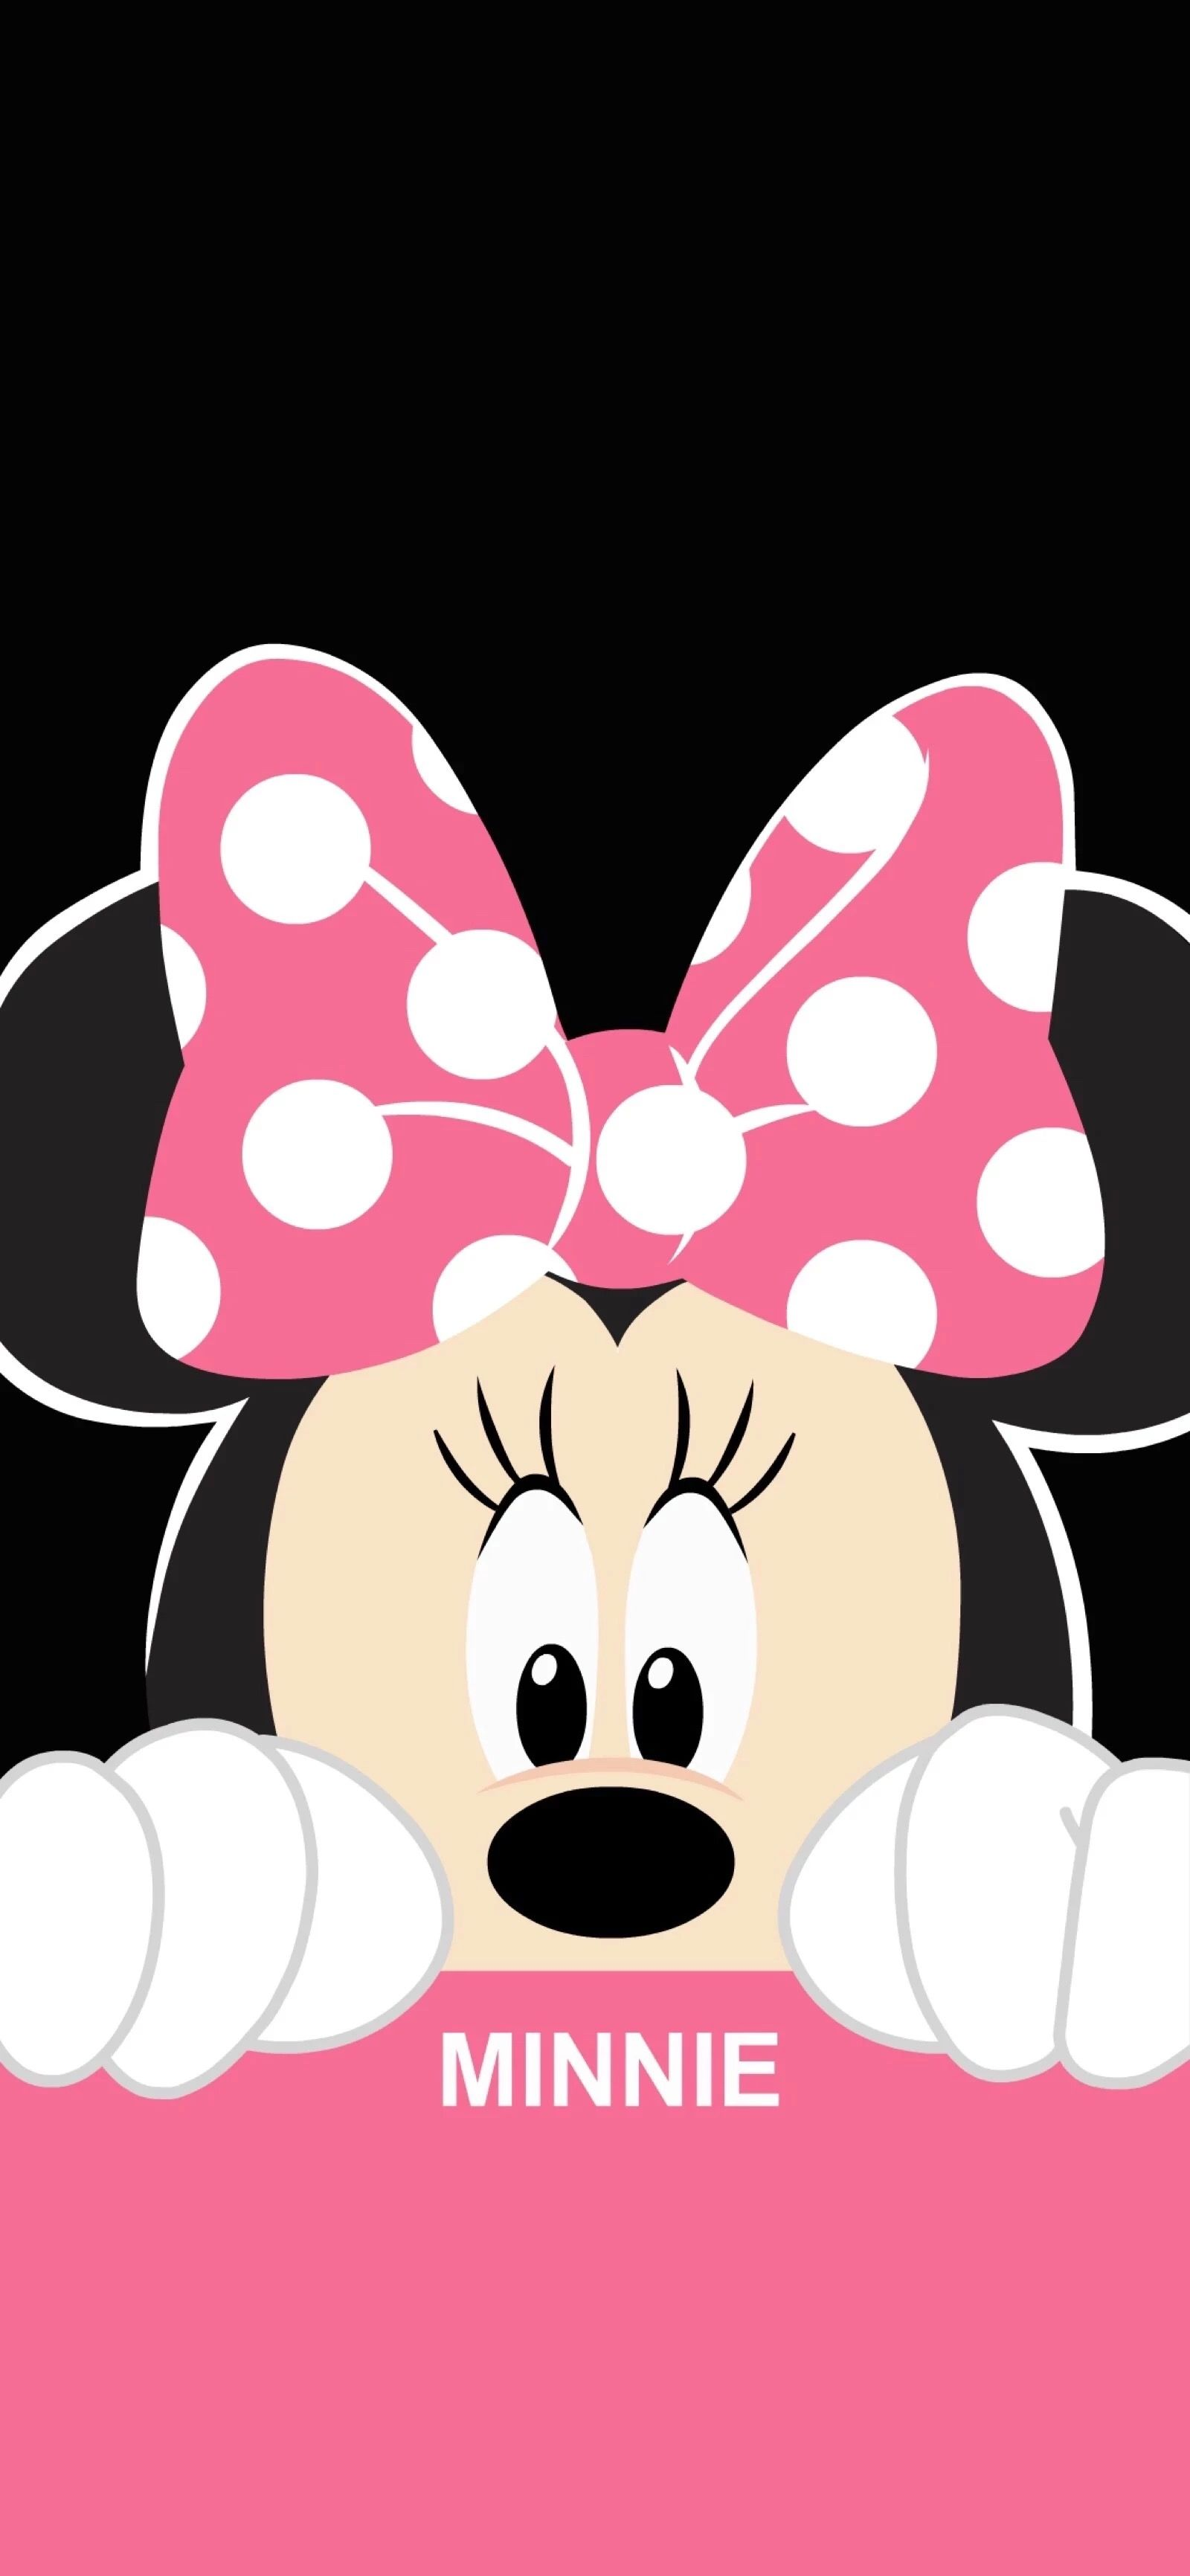 Minnie Mouse Iphone Wallpapers Top Free Minnie Mouse